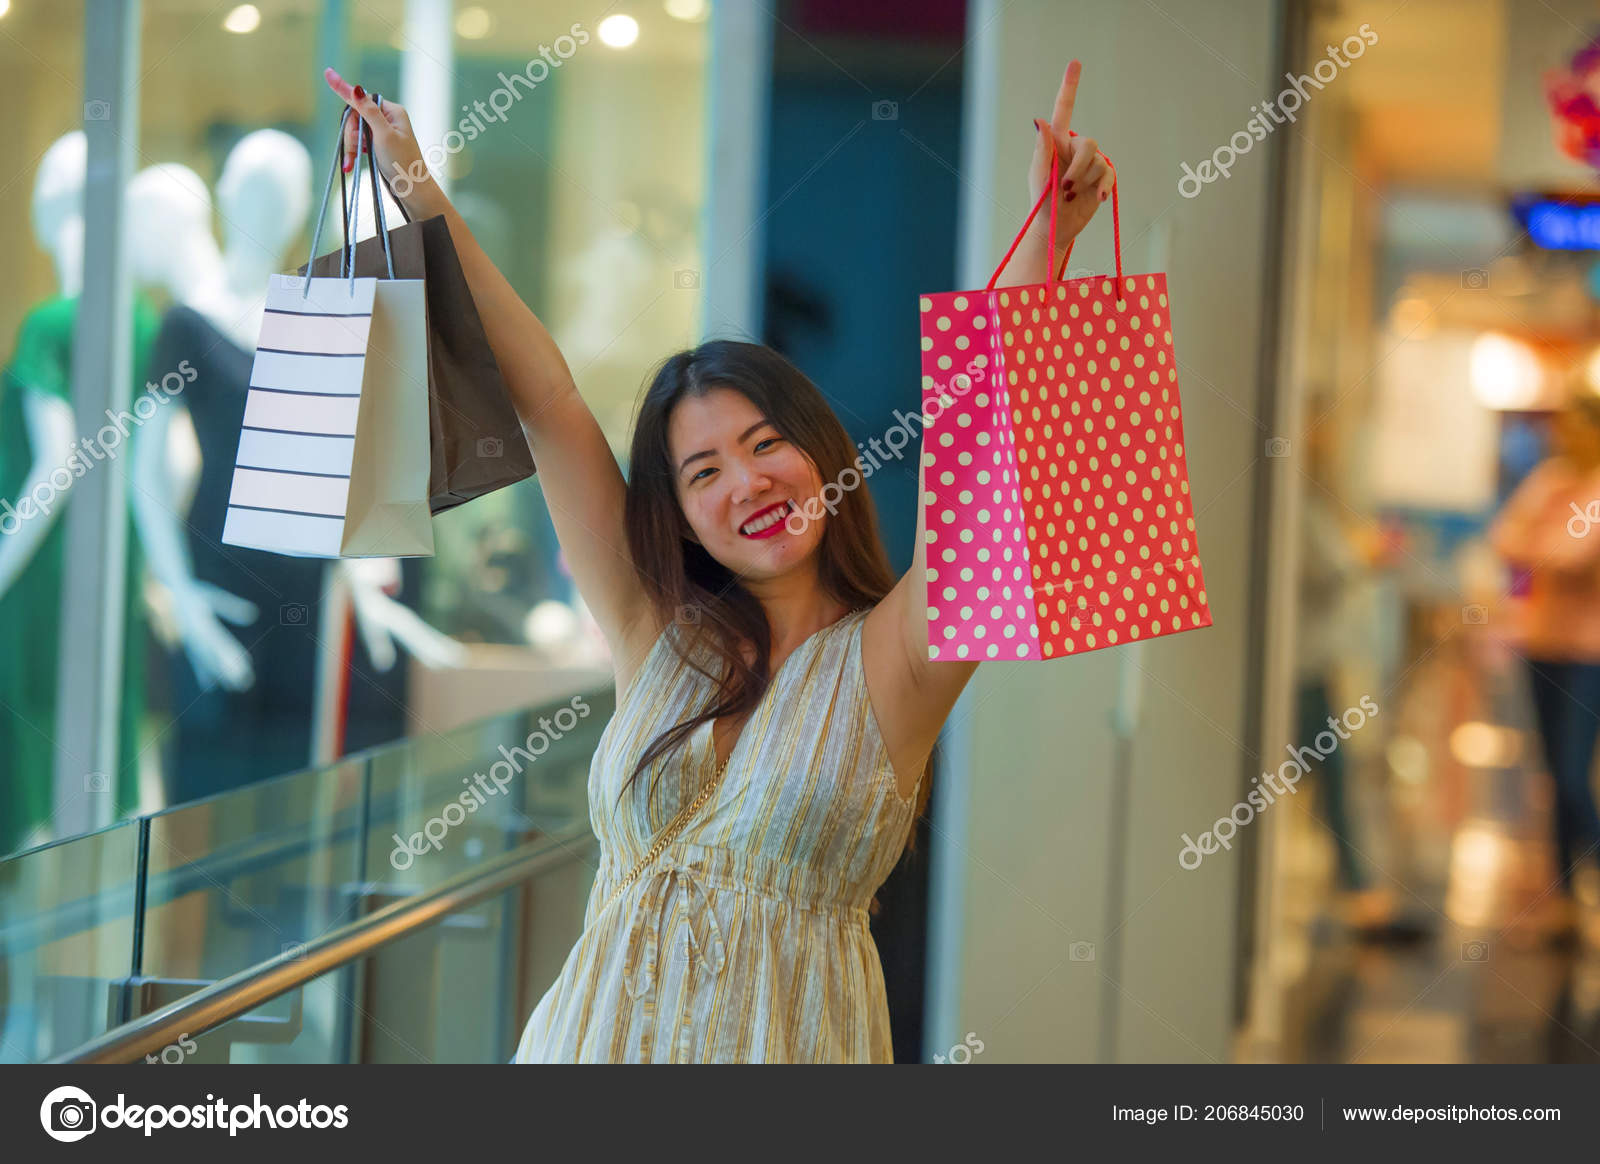 6acbce35e7c Lifestyle indoors portrait of young happy and beautiful Asian Korean woman  carrying shopping bags in mall buying cheerful walking around looking  fashion ...